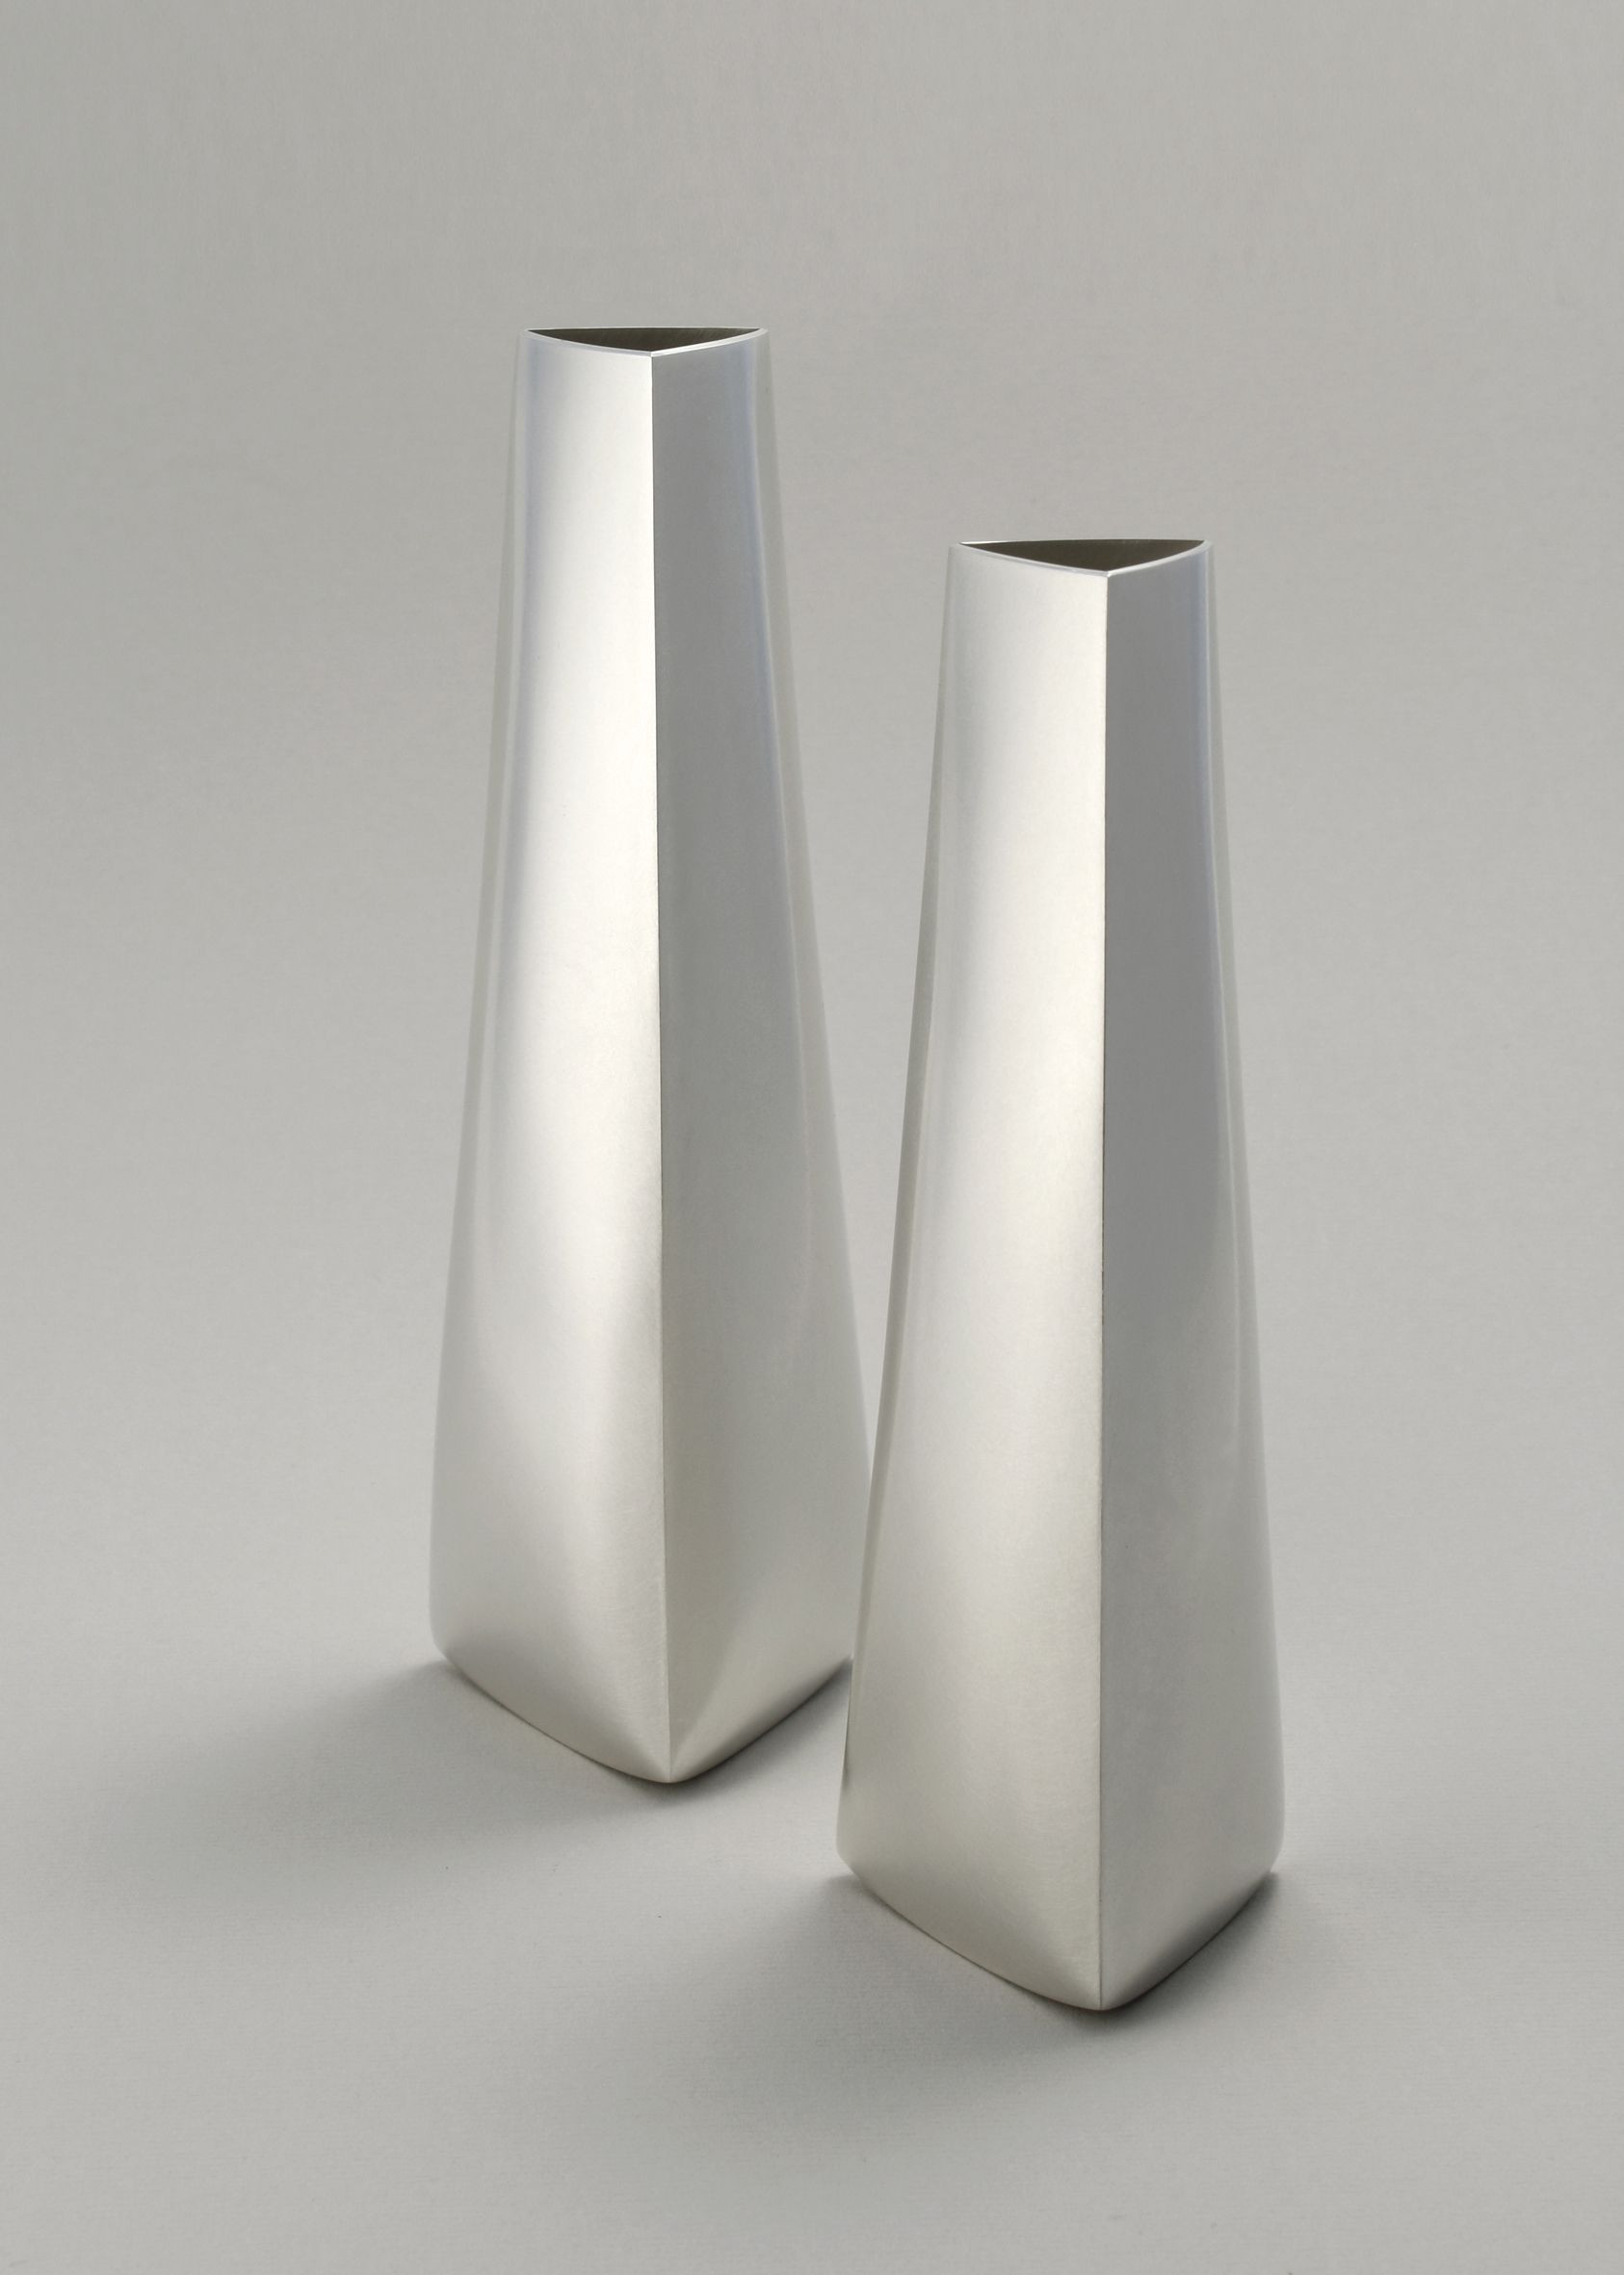 tall stainless steel vase of angela cork equilateral vases v e… s iž s wood metal with angela cork equilateral vases